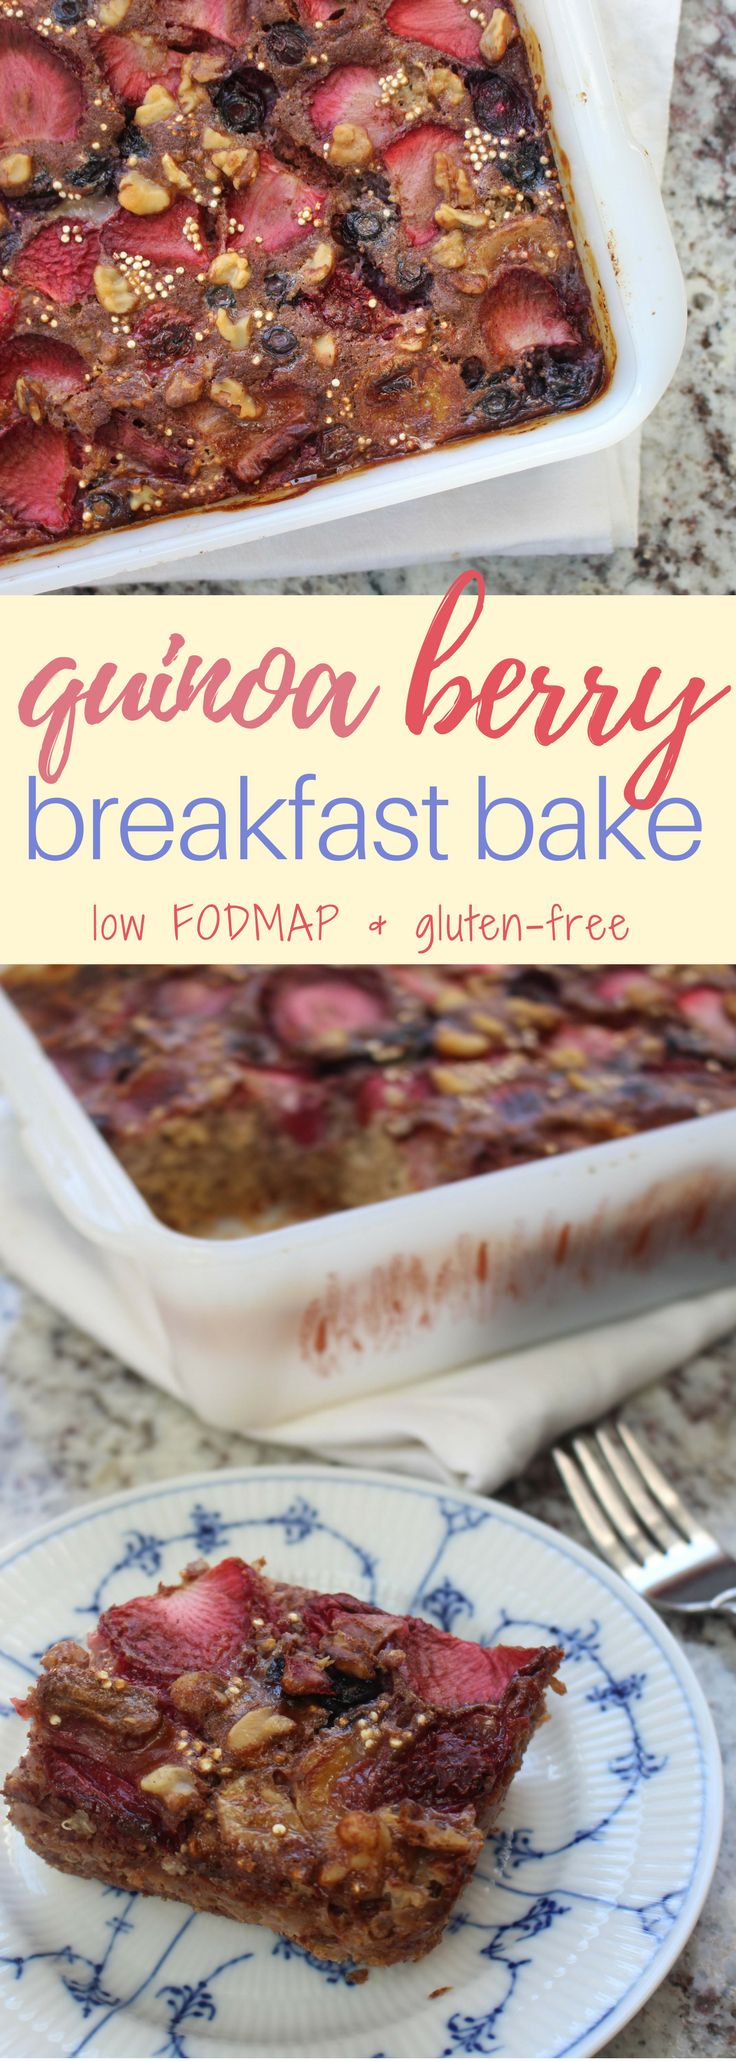 High protein and fibre breakfast that will keep you full until lunch! Safe for the low FODMAP diet and gluten free.